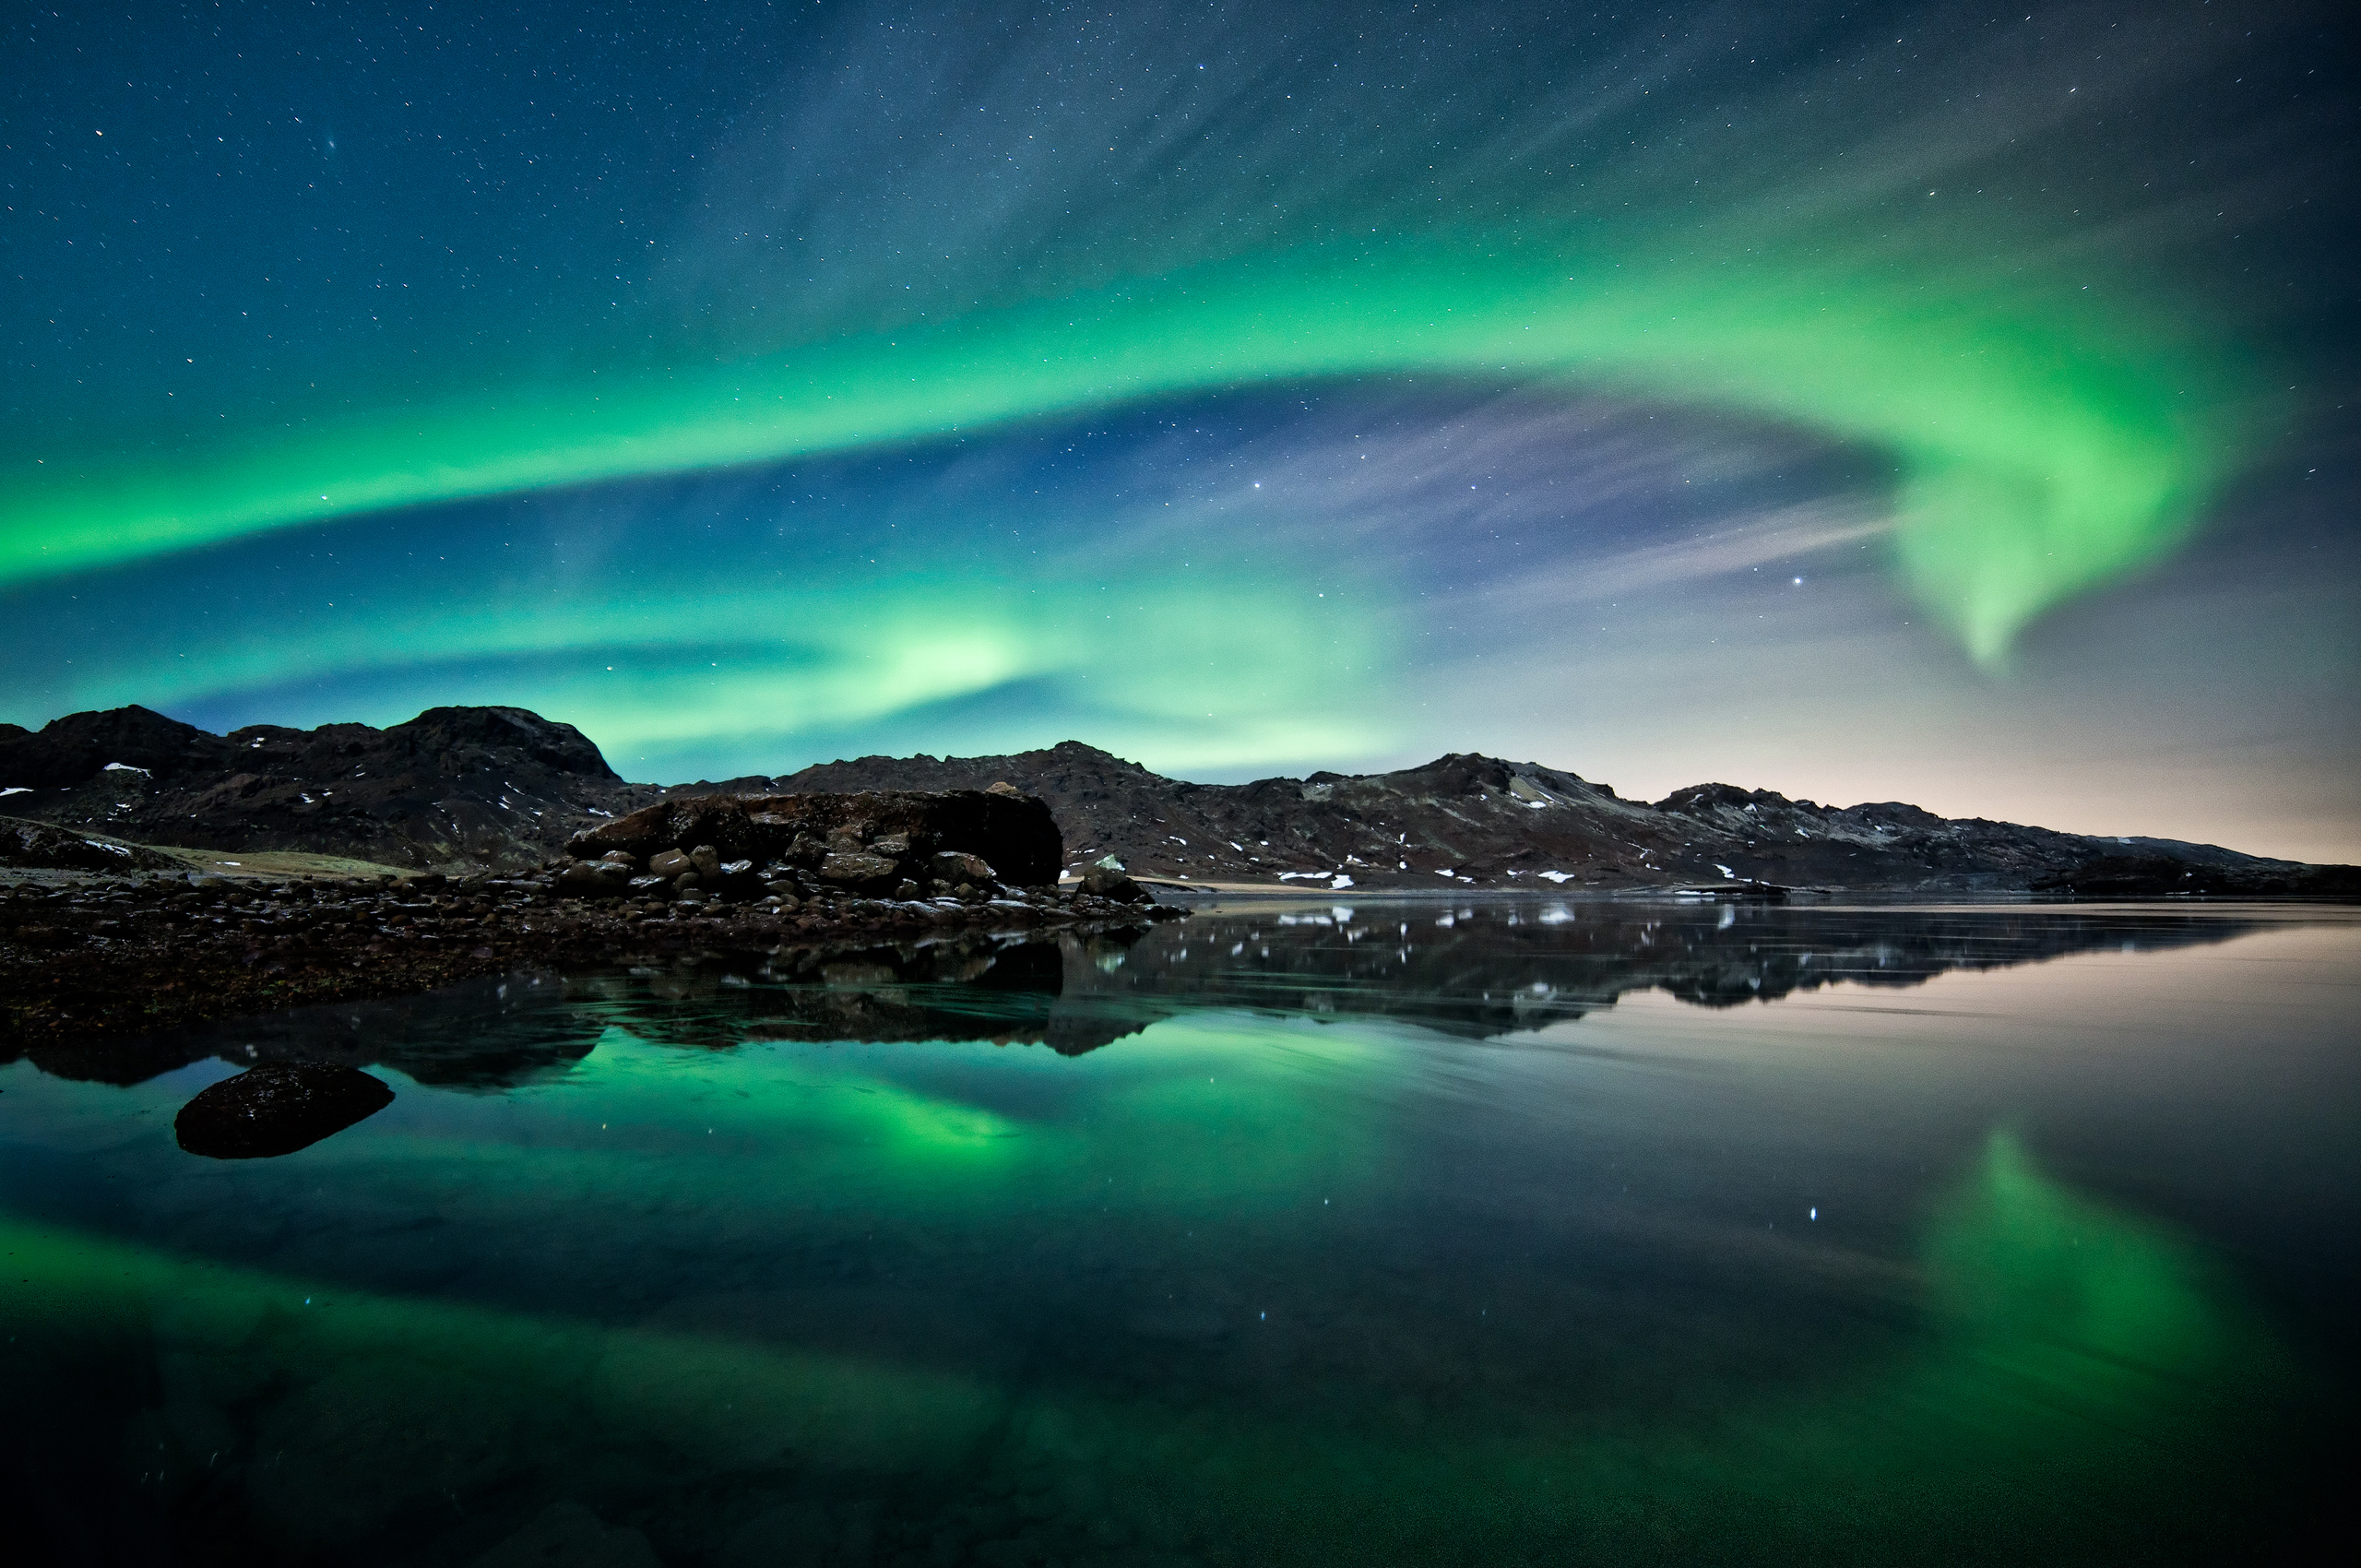 Northern Lights wallpapers and Northern Lights backgrounds for 2560x1700